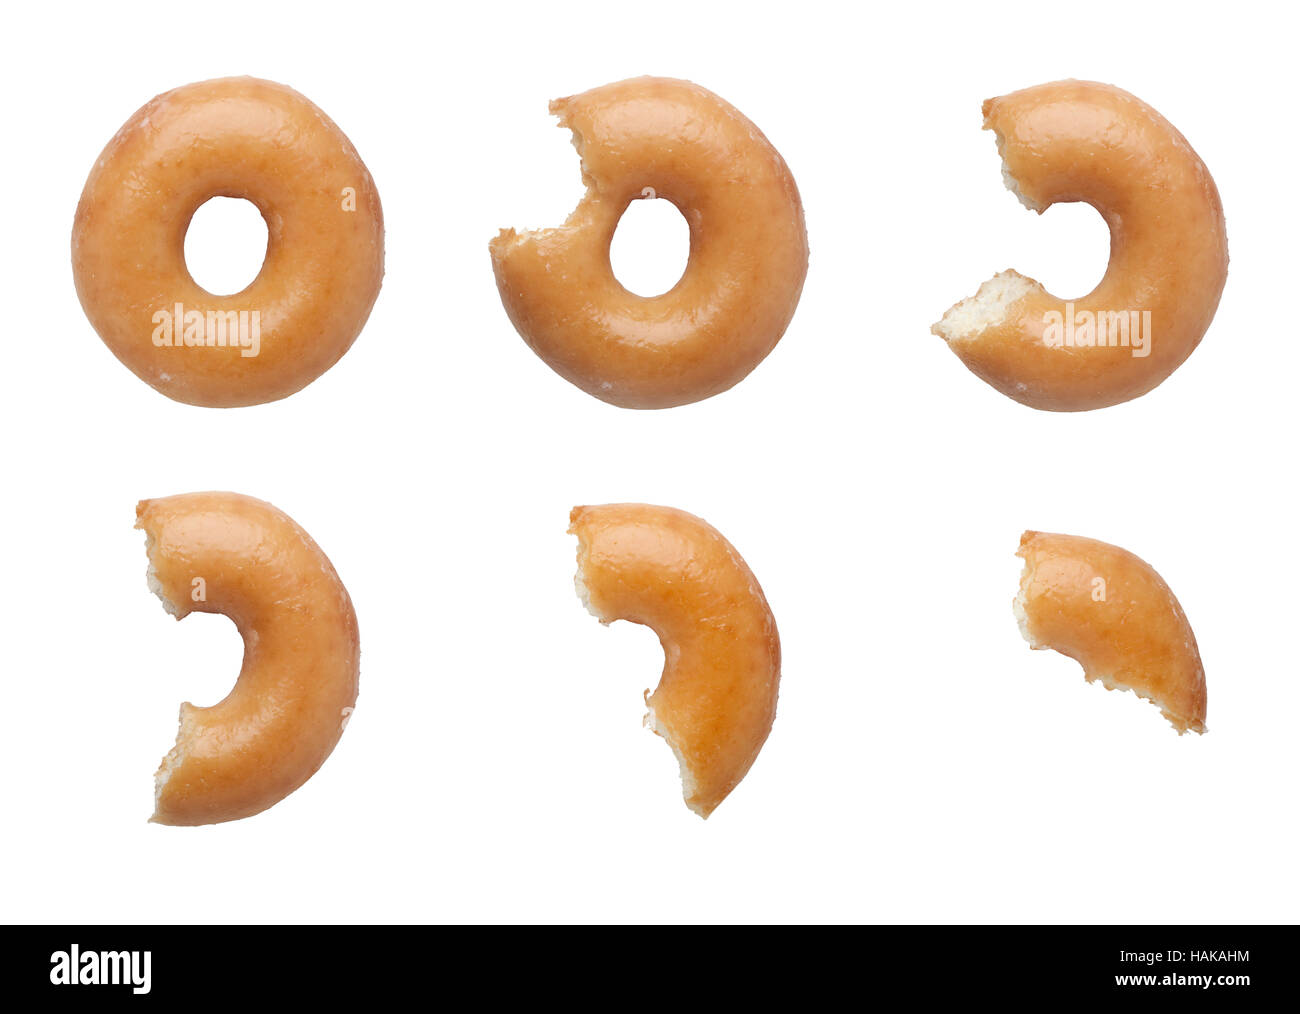 Sequence of bites taken off a donut isolated on white background - Stock Image